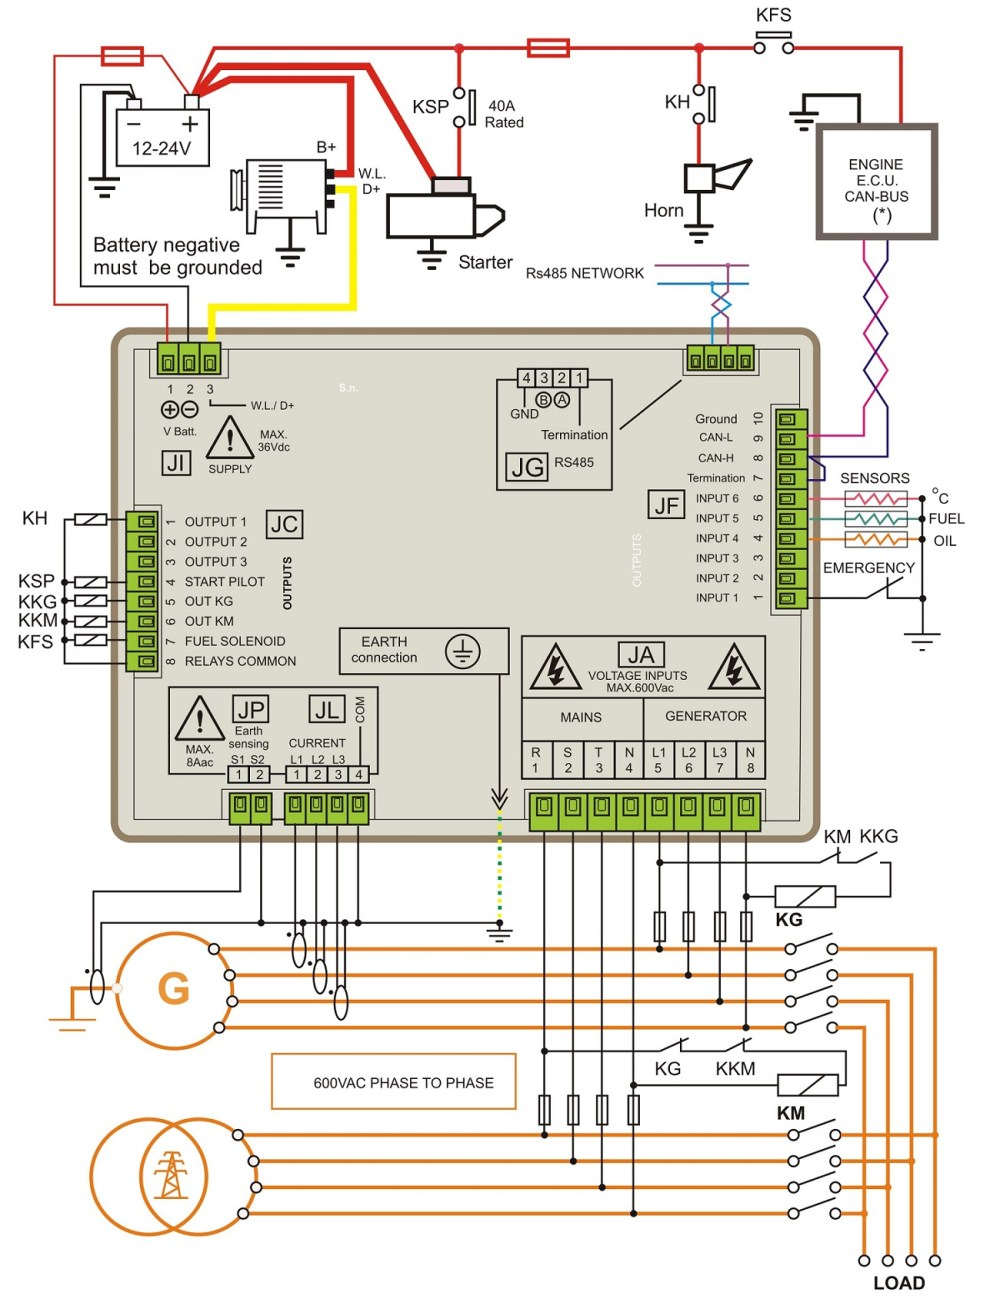 medium resolution of generator control panel wiring diagram